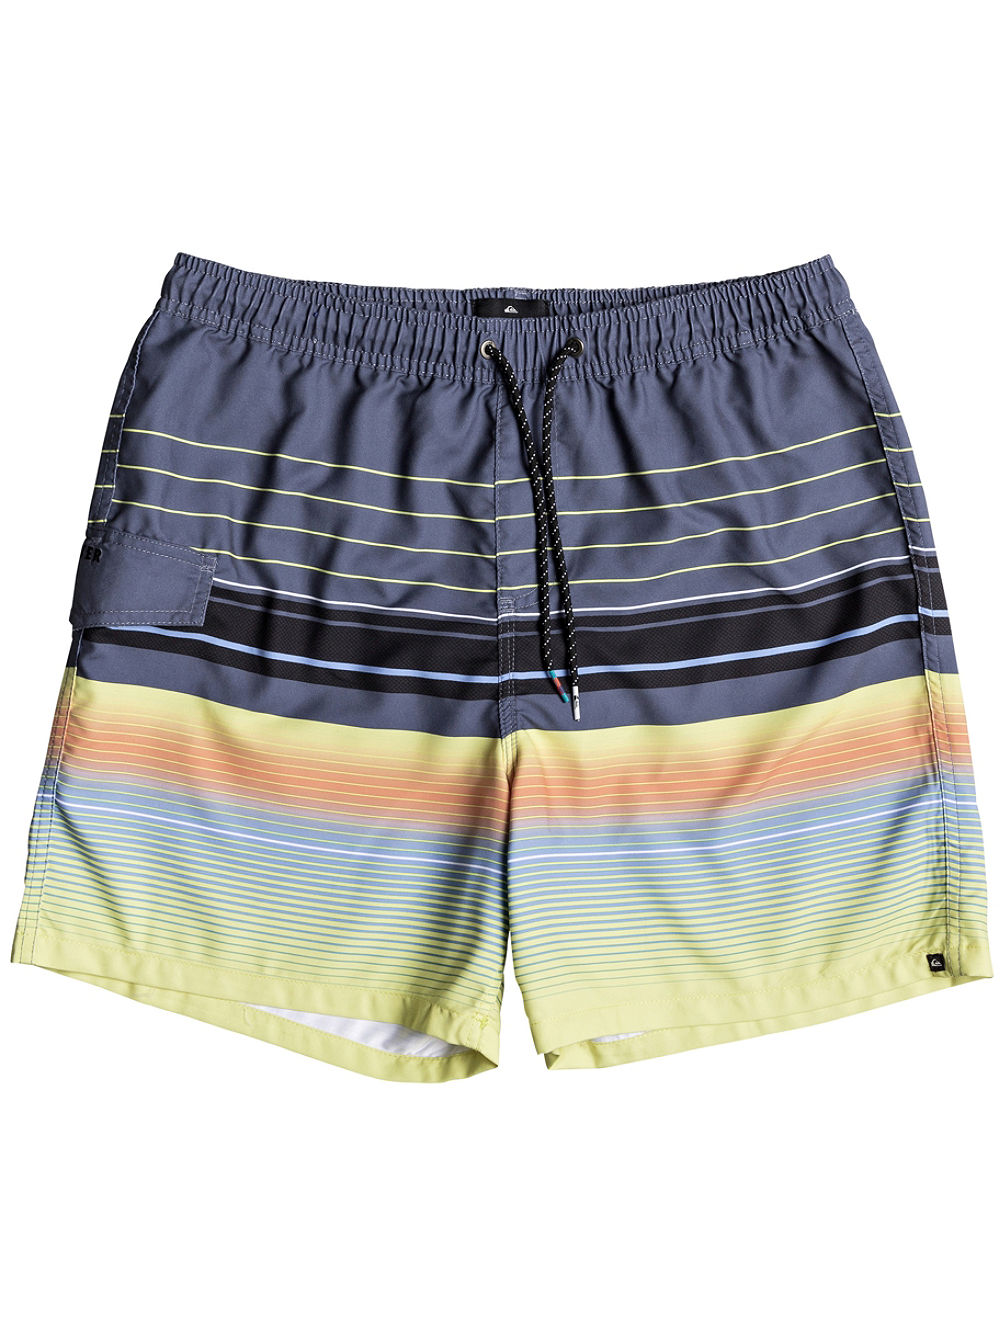 "Swell Vision Volley 17"" Boardshorts"